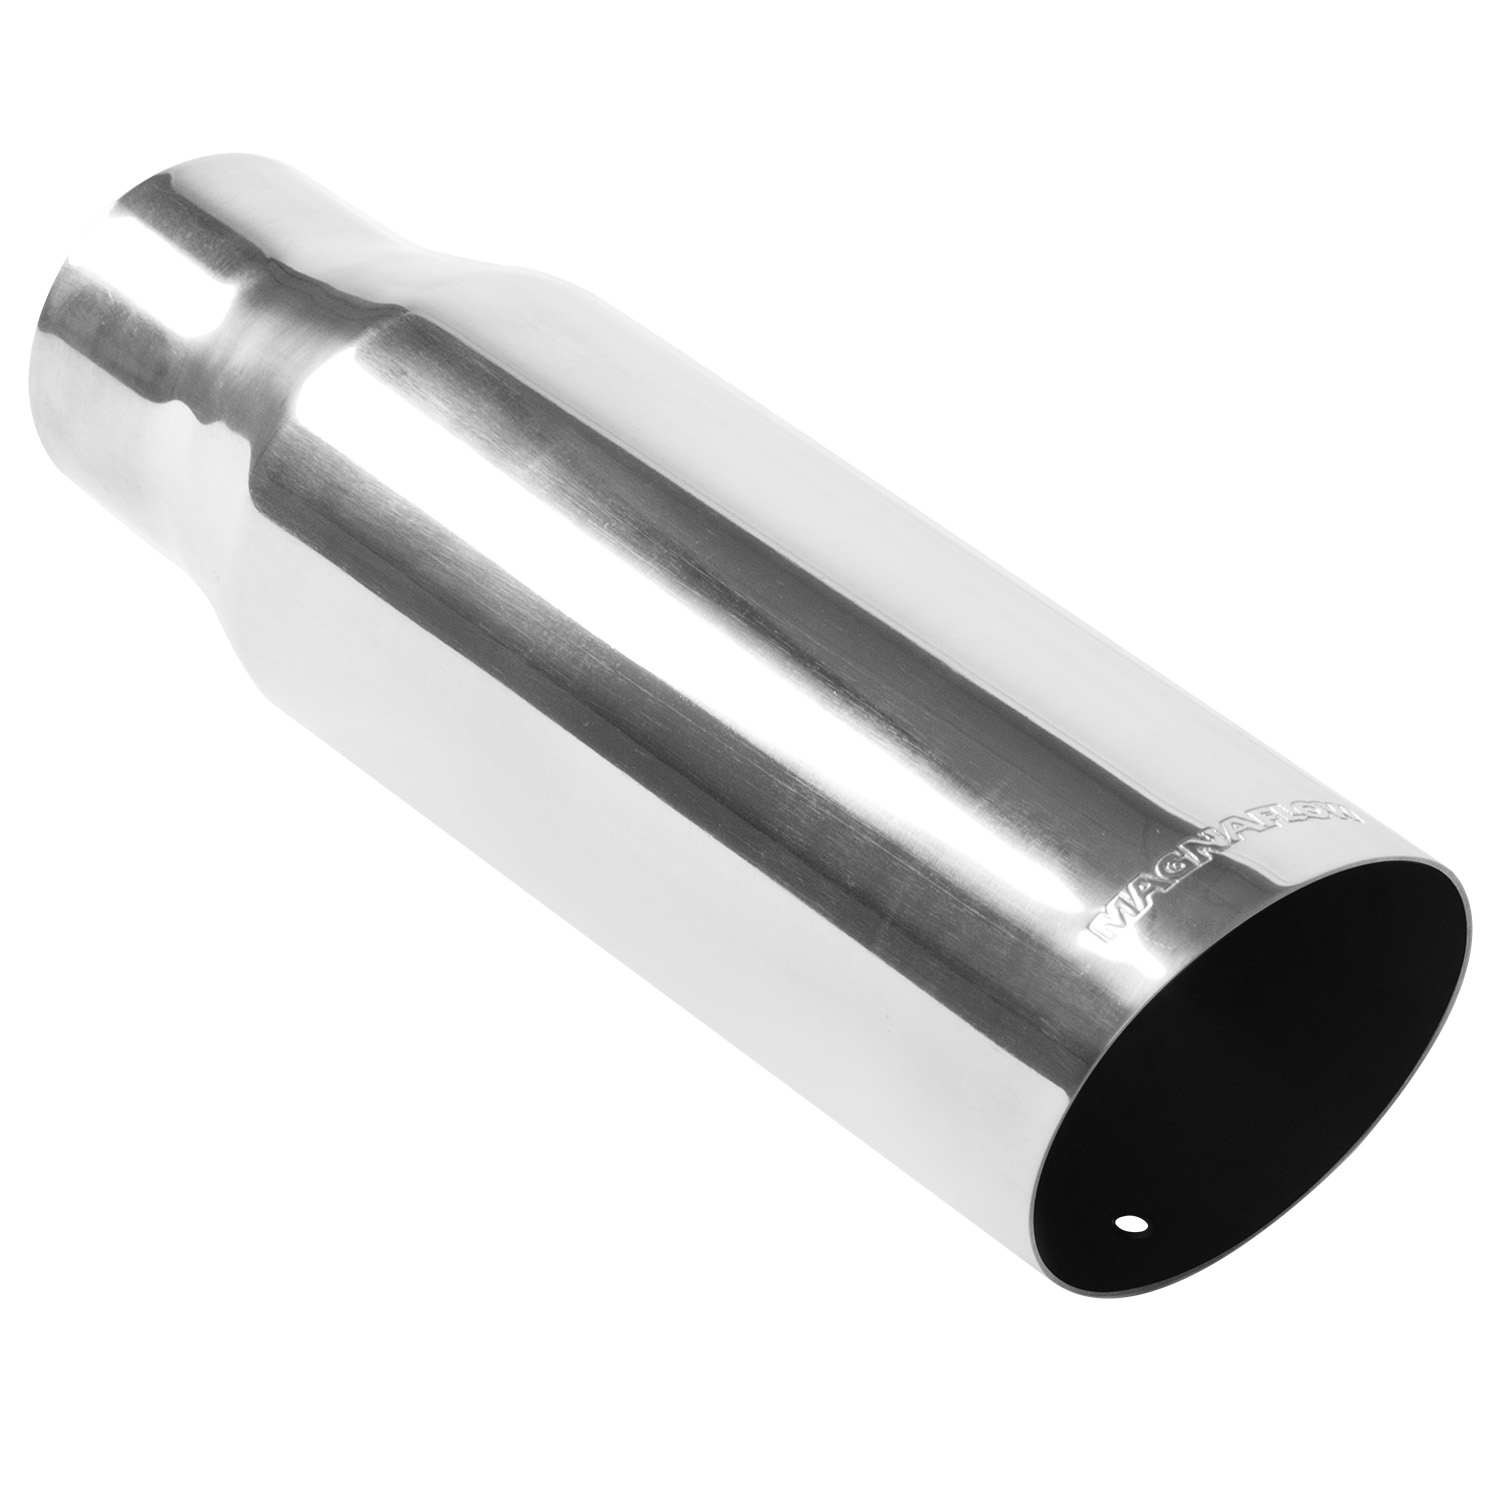 35205 magnaflow performance exhaust tail pipe tip 2 1 2 inch inside diameter inlet